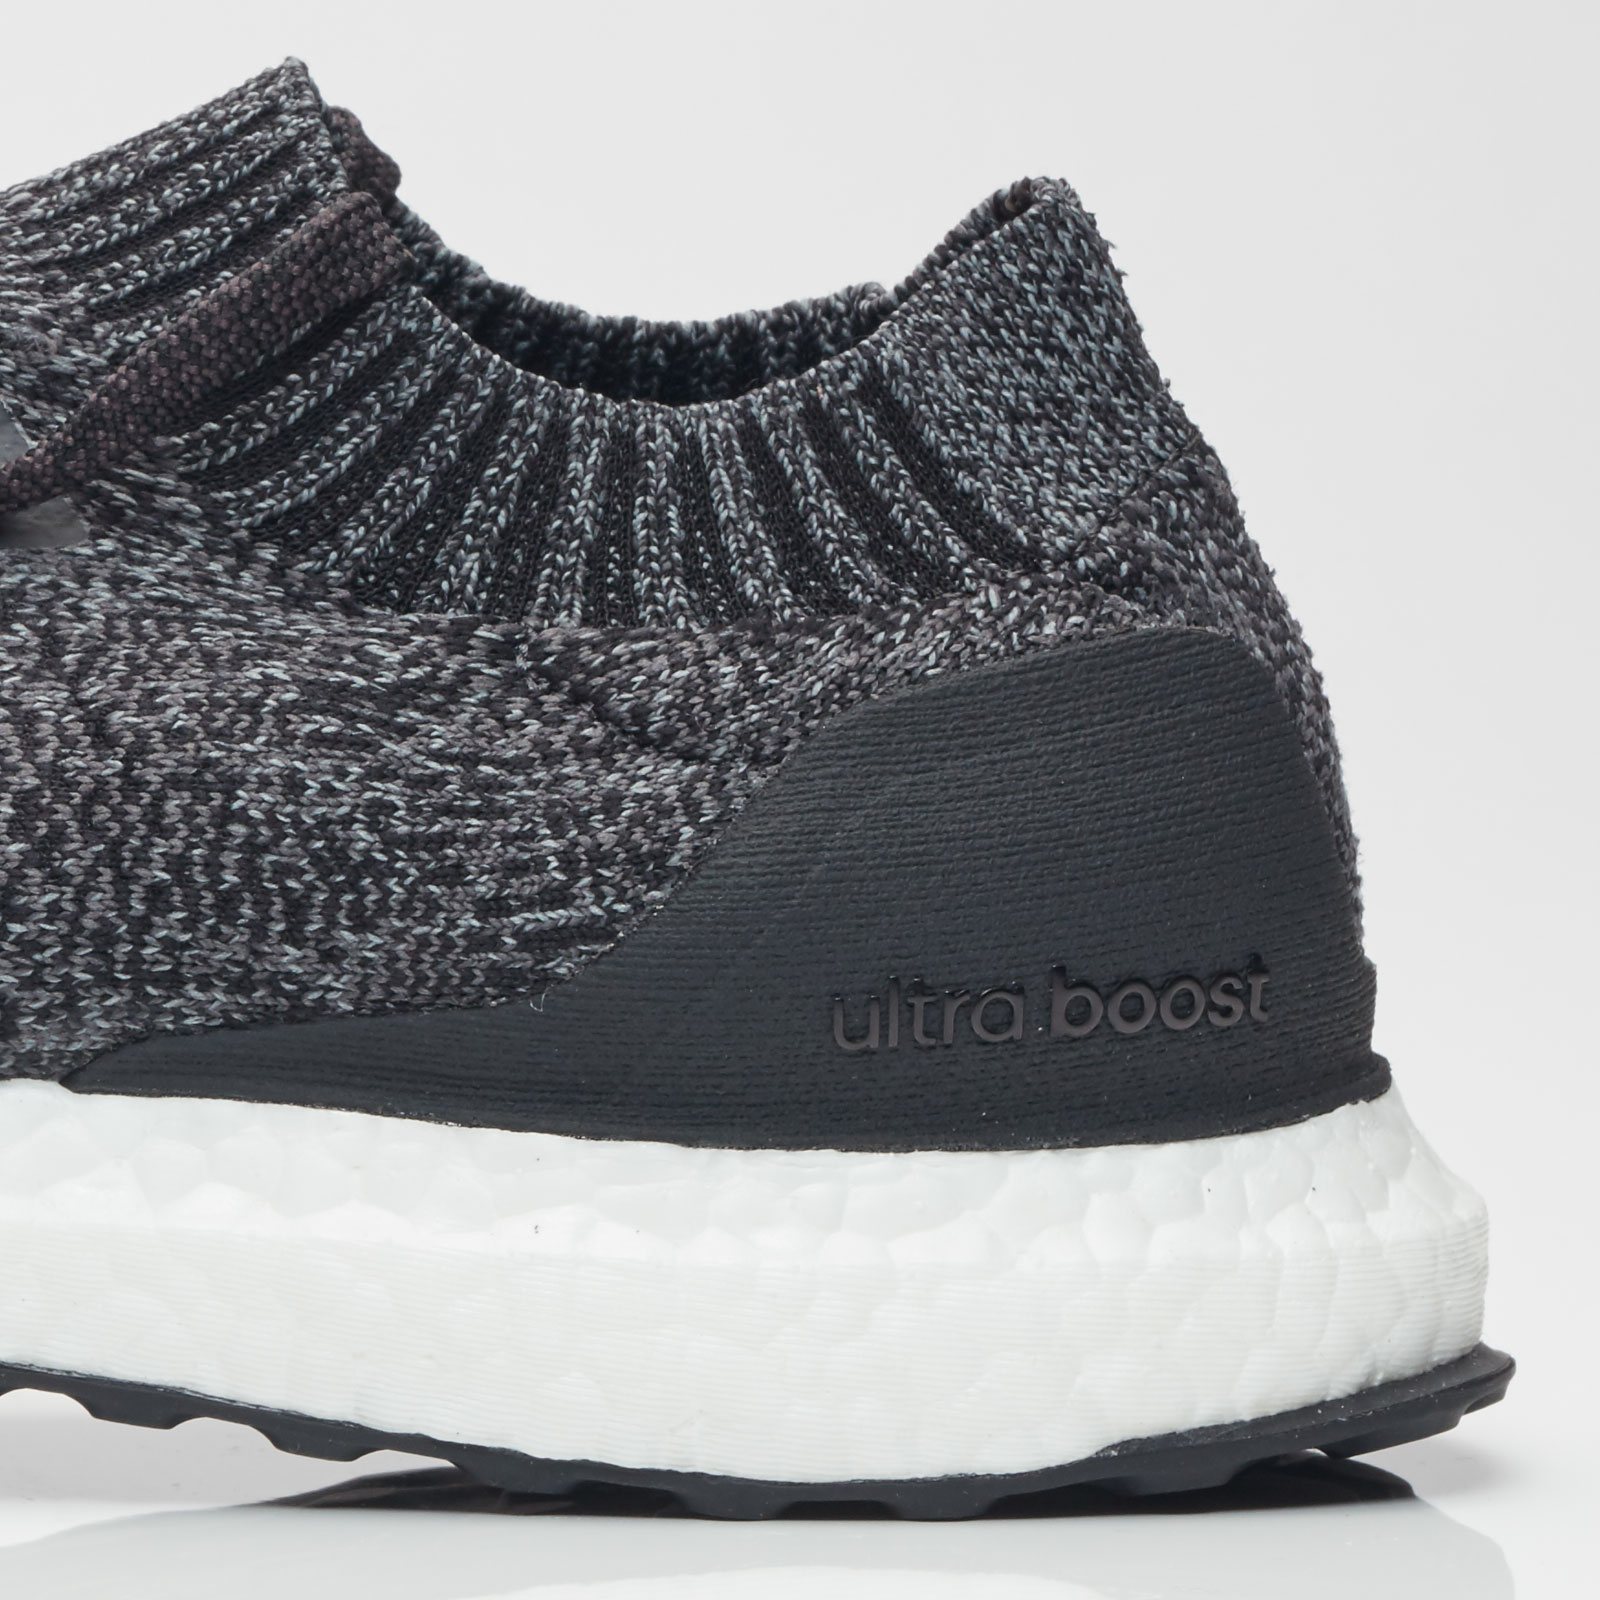 7a2aed1e61838 adidas UltraBOOST Uncaged - By2551 - Sneakersnstuff